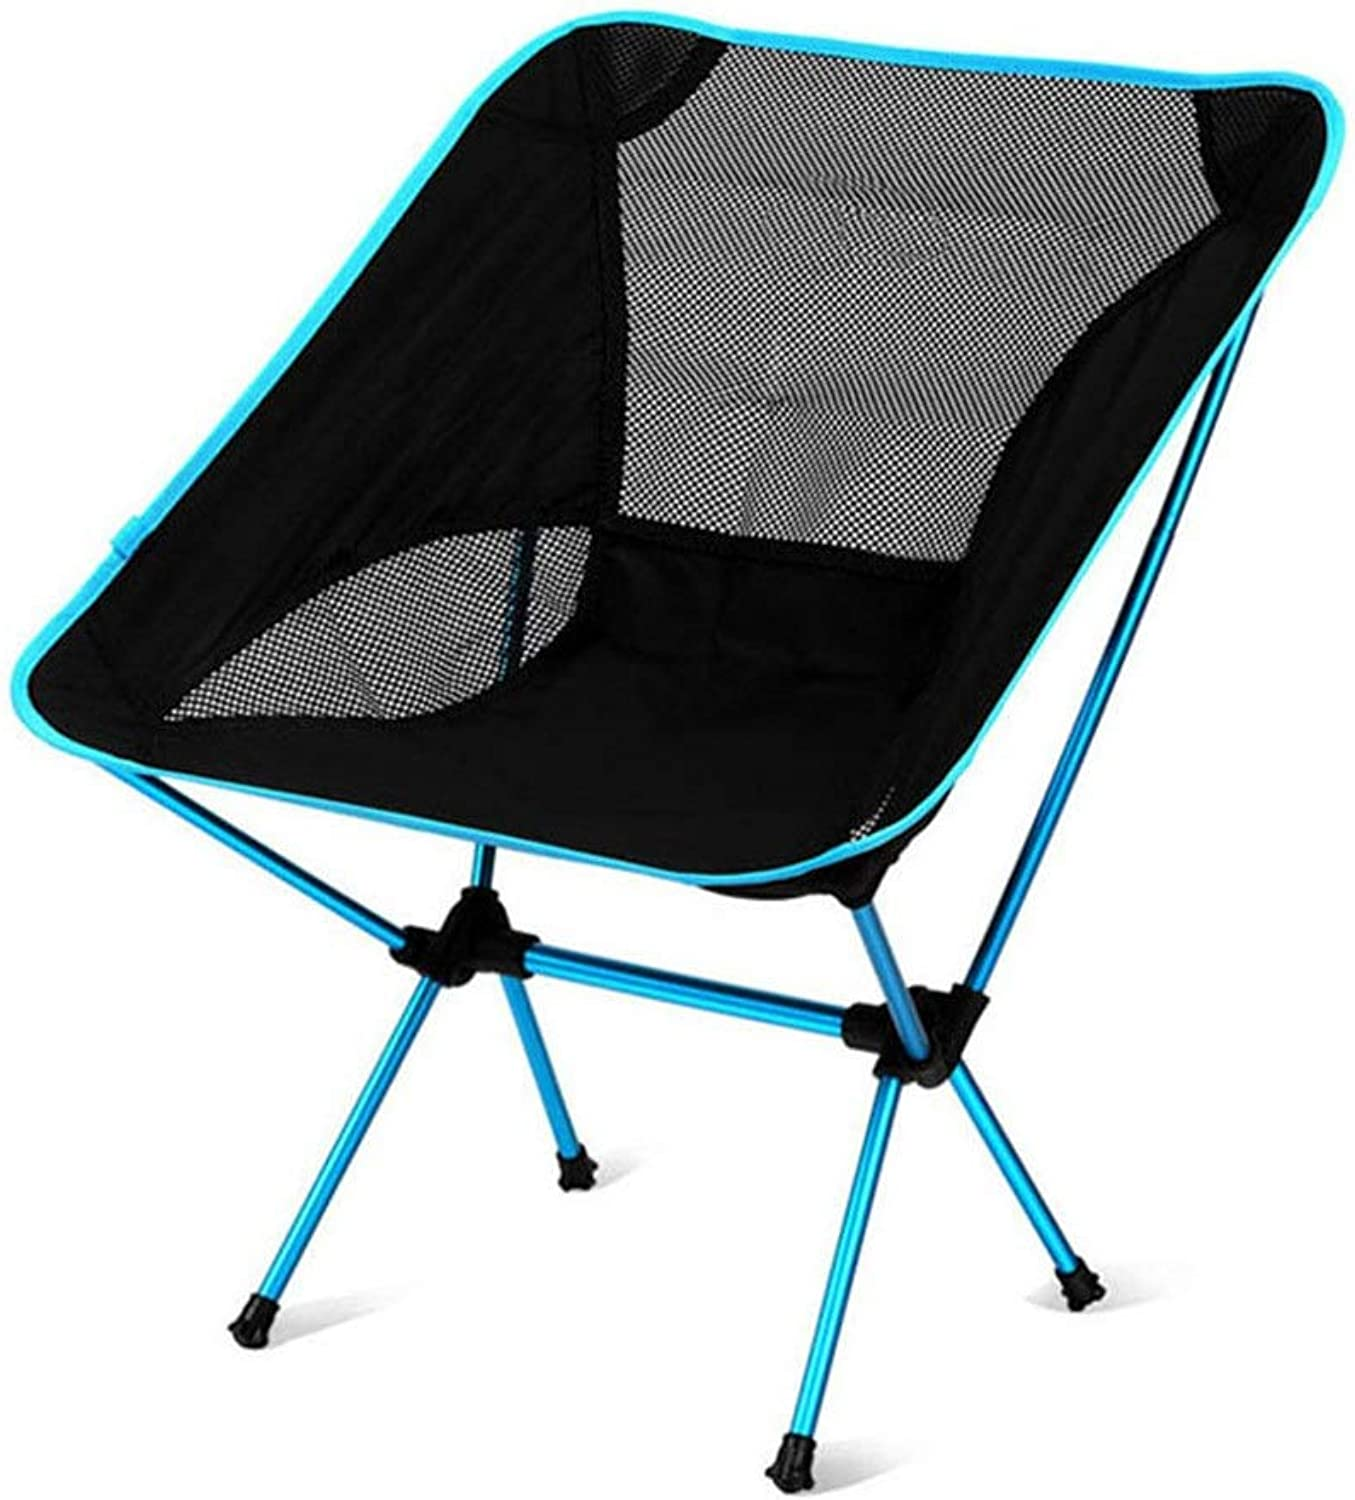 Portable Camping Chair, Ultralight Folding Chair with Carry Bag for Hiking, Beach, Fishing